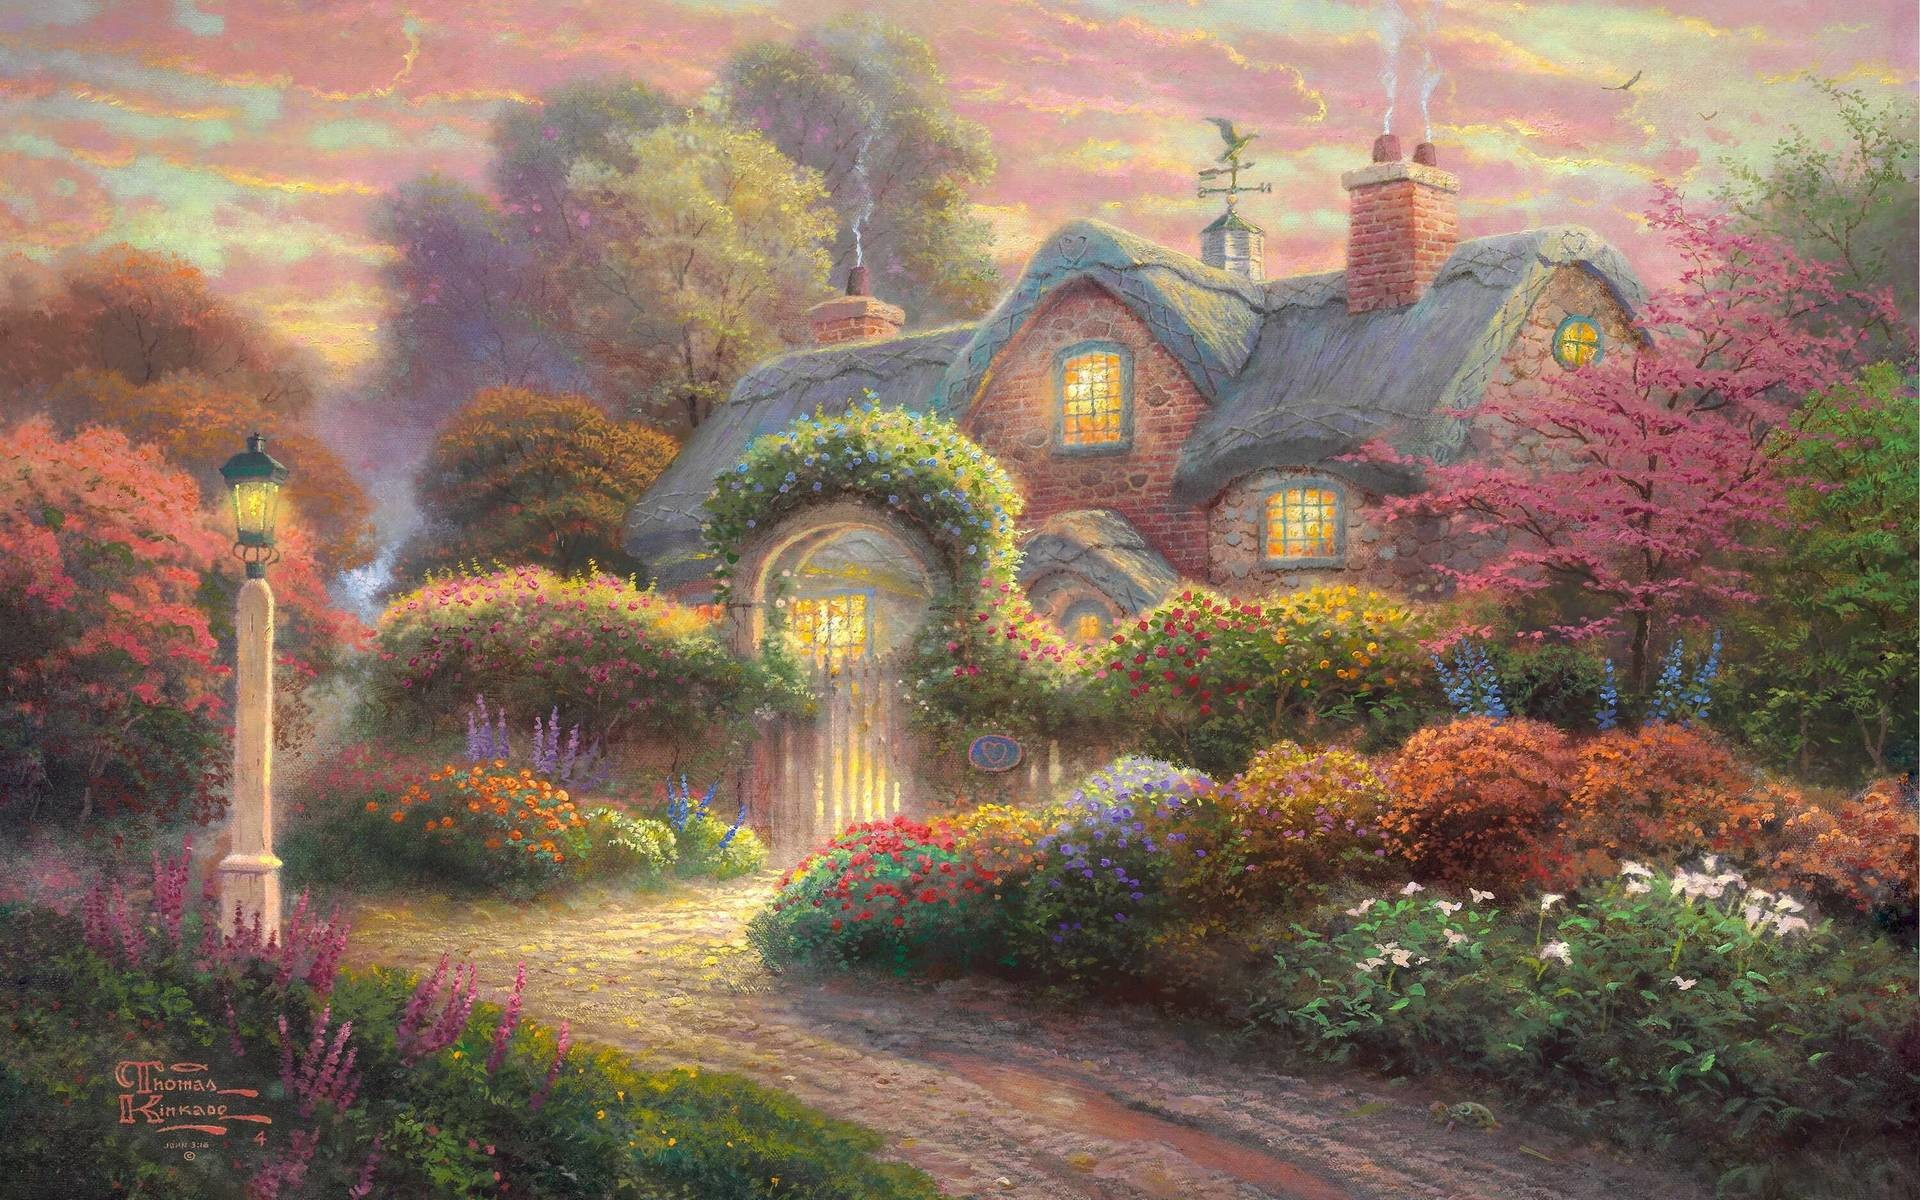 Thomas Kinkade Wallpapers | HD Wallpapers Pictures